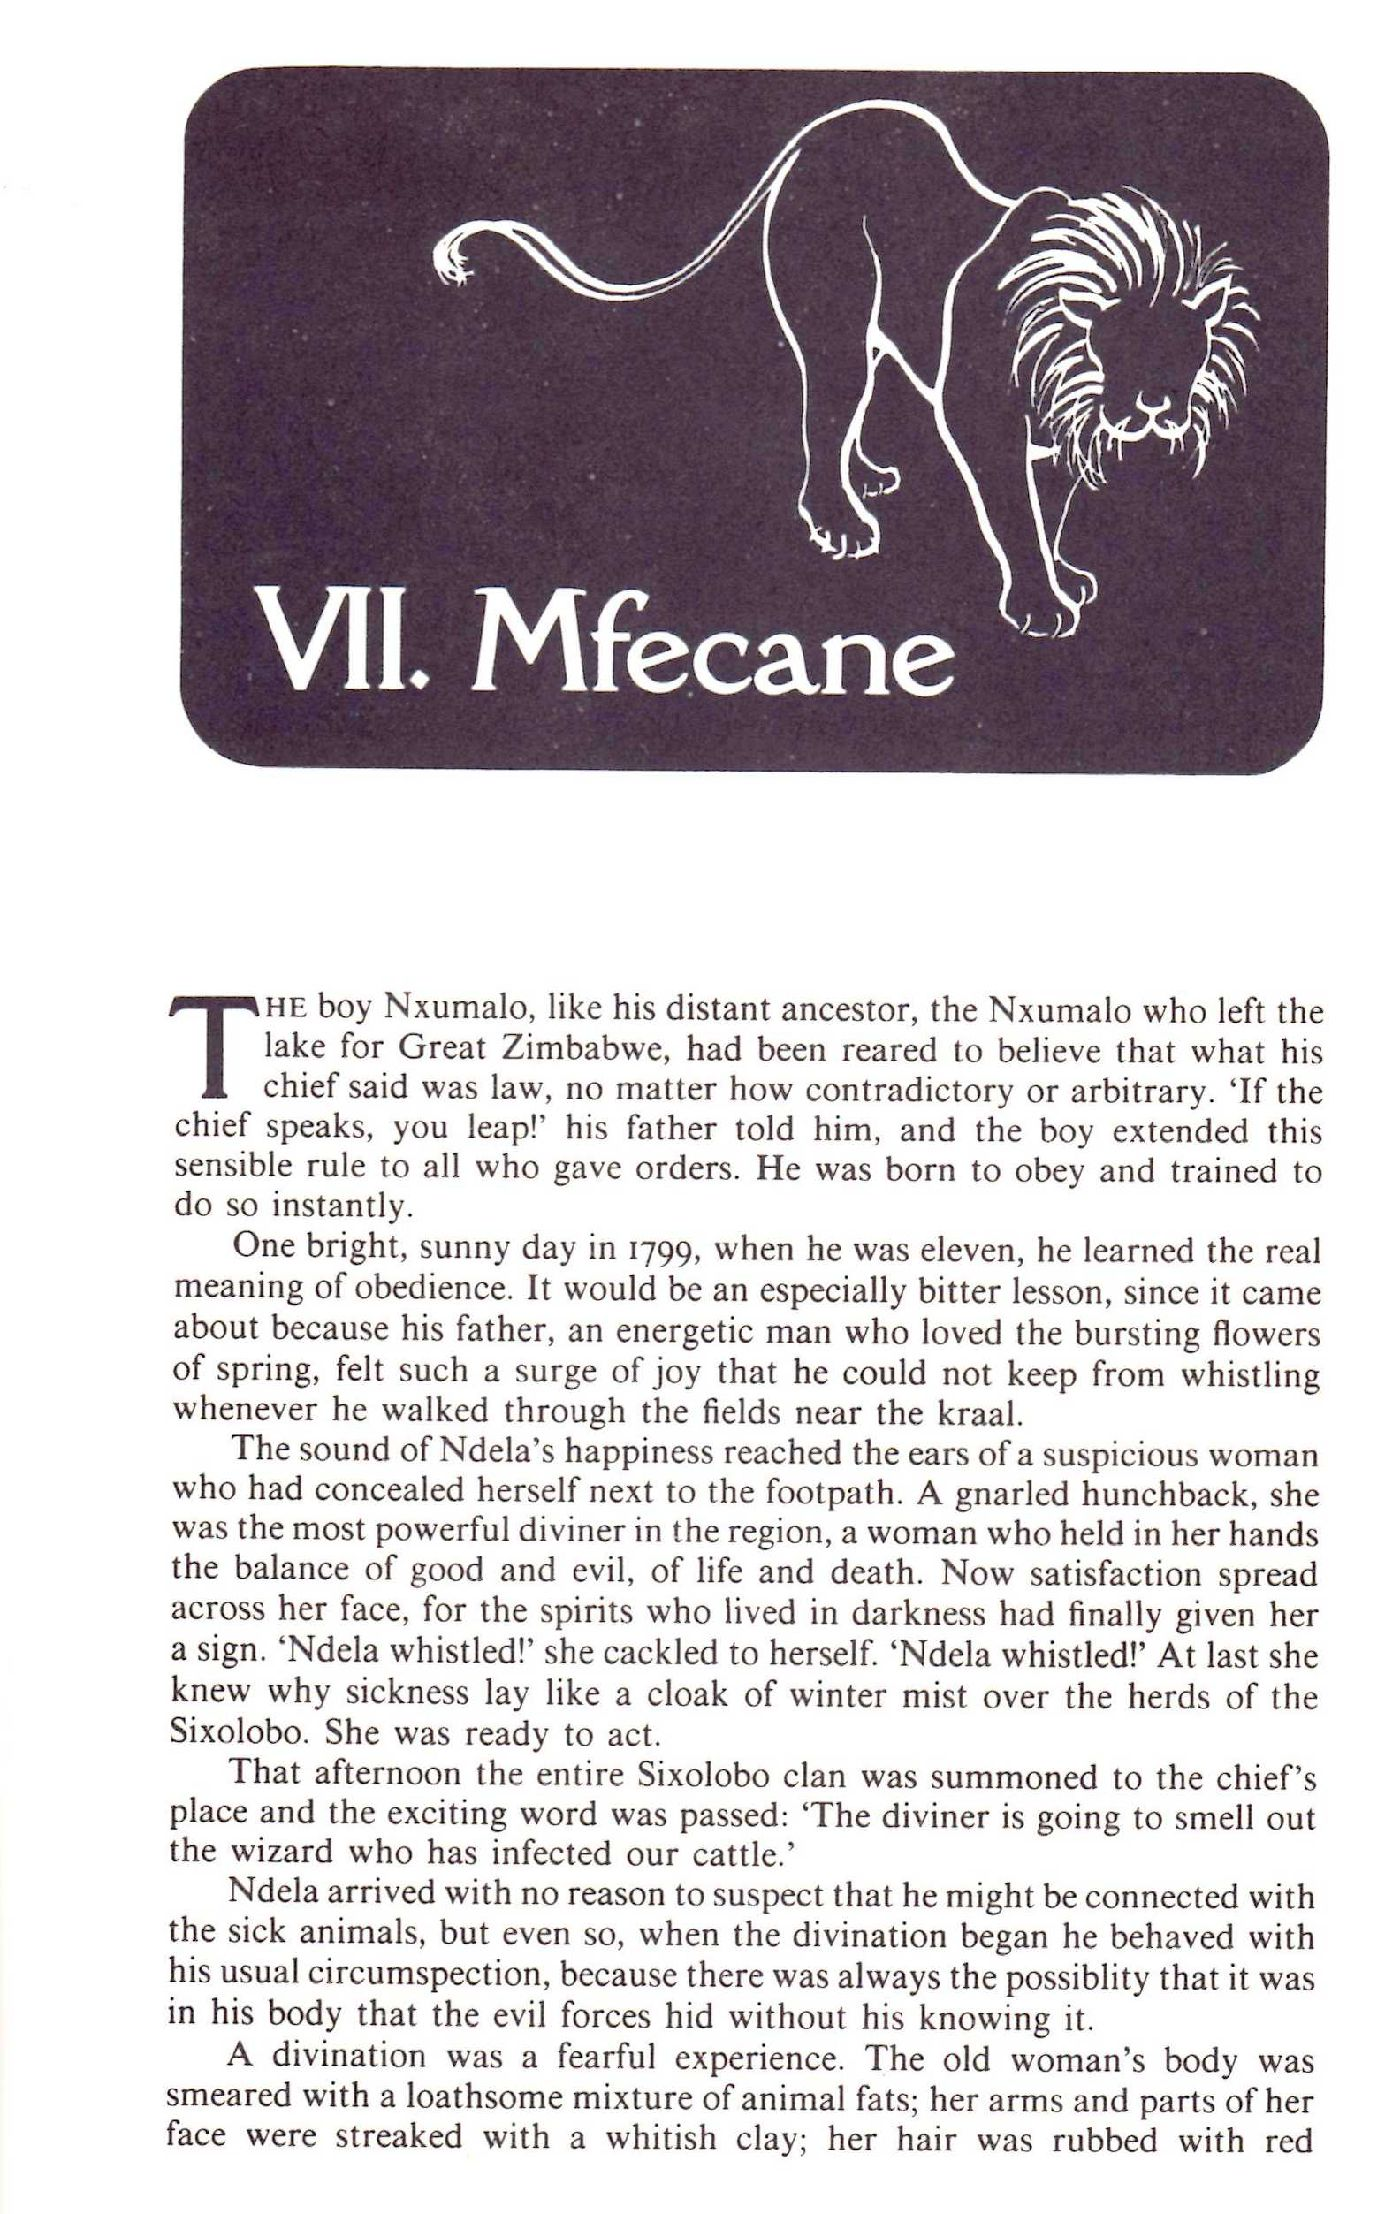 James A. Michener | The Covenant | Mfecane chapter